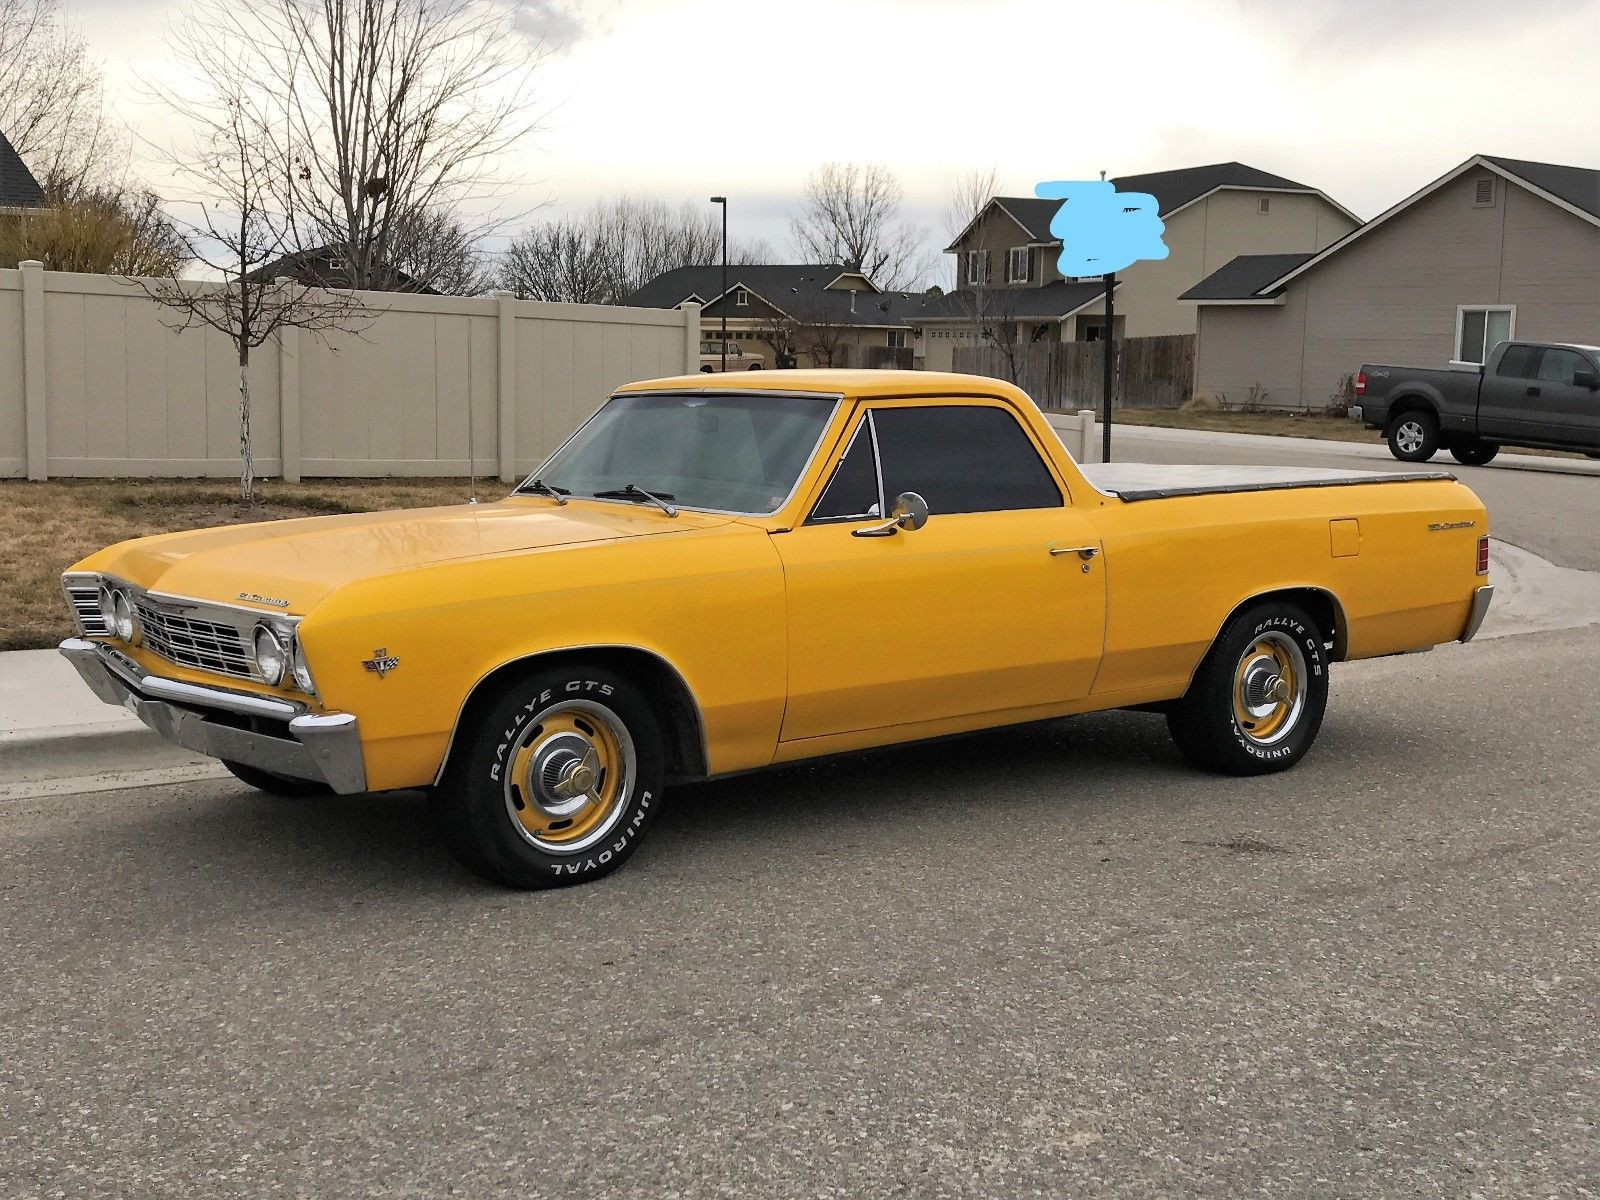 Rebuilt engine 1967 chevrolet el camino vintage for sale for Reconditioned motors for sale